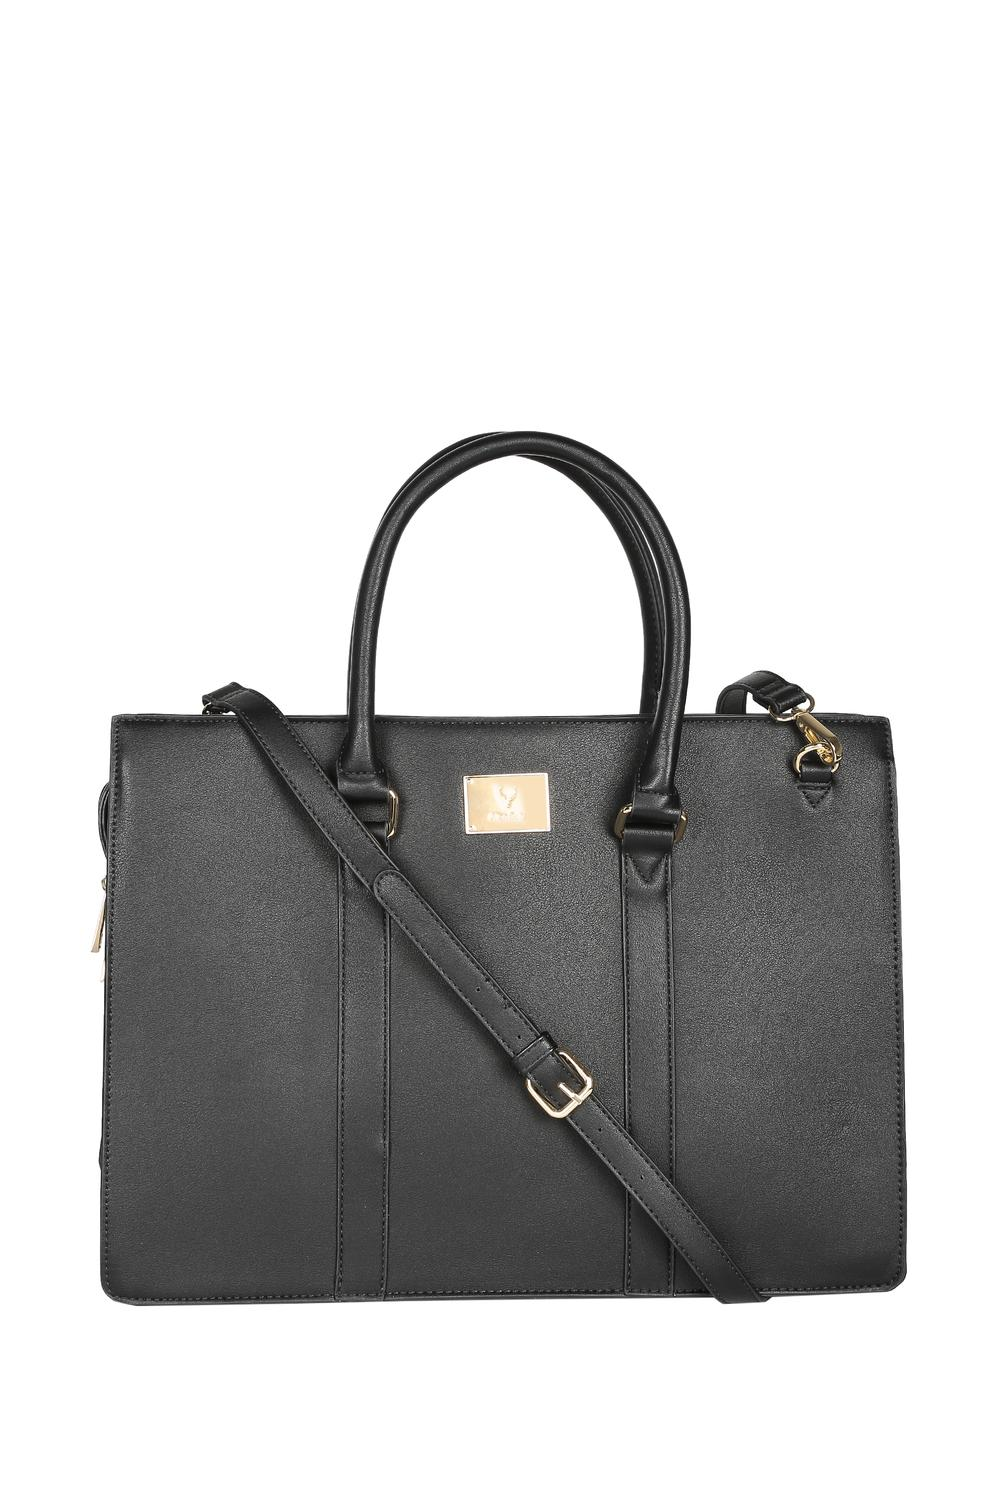 Solly Fashion Accessories Allen Black Laptop Bag For Women At Allensolly